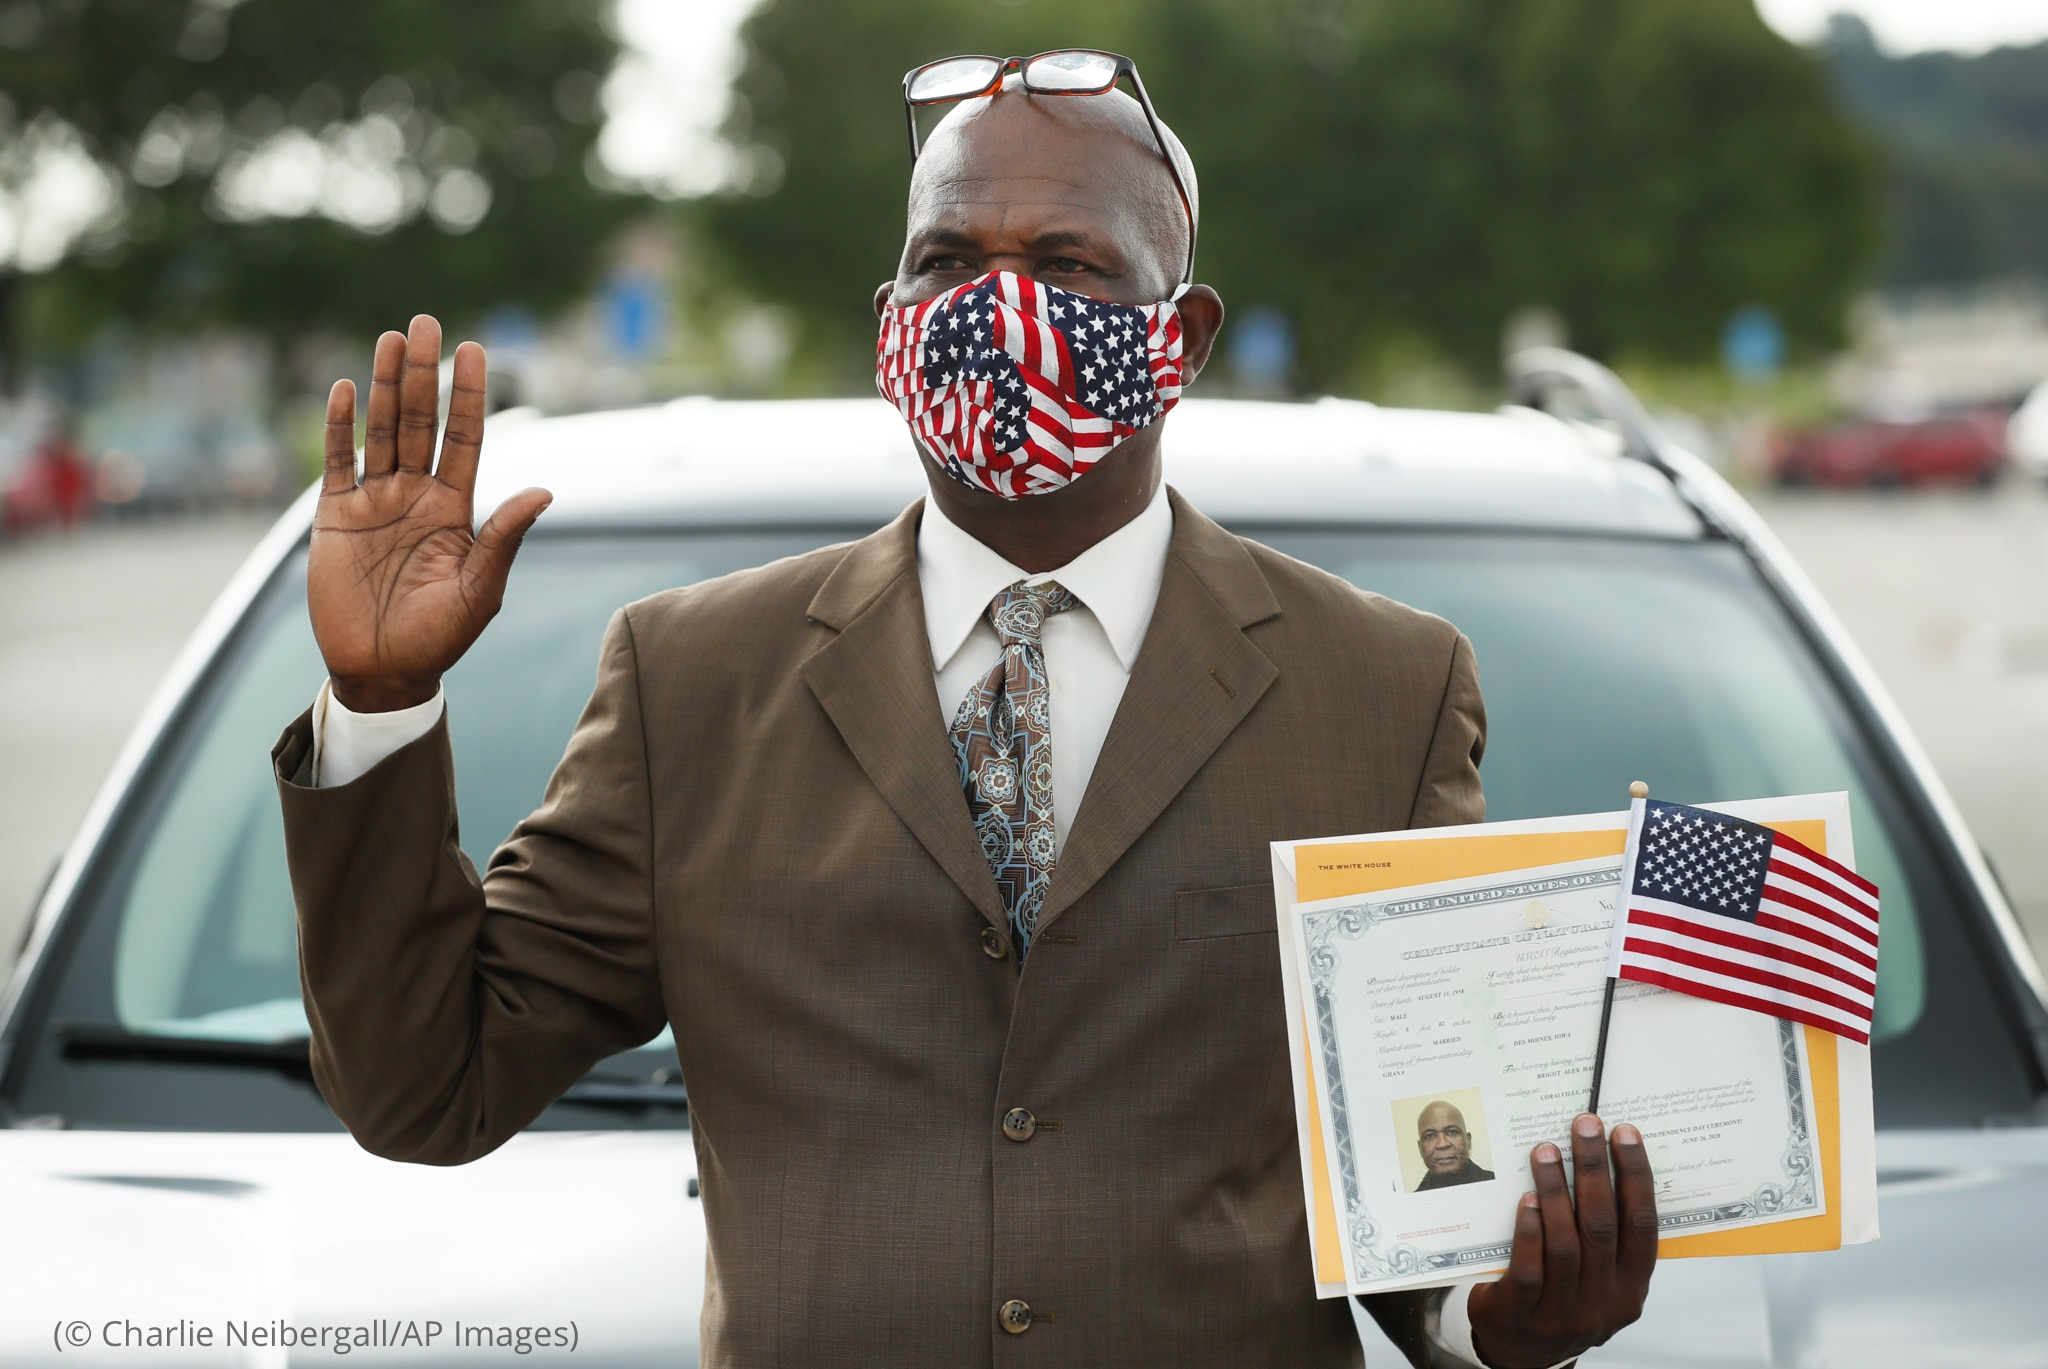 Man with right hand raised and other holding certificate and small flag (© Charlie Neibergall/AP Images)